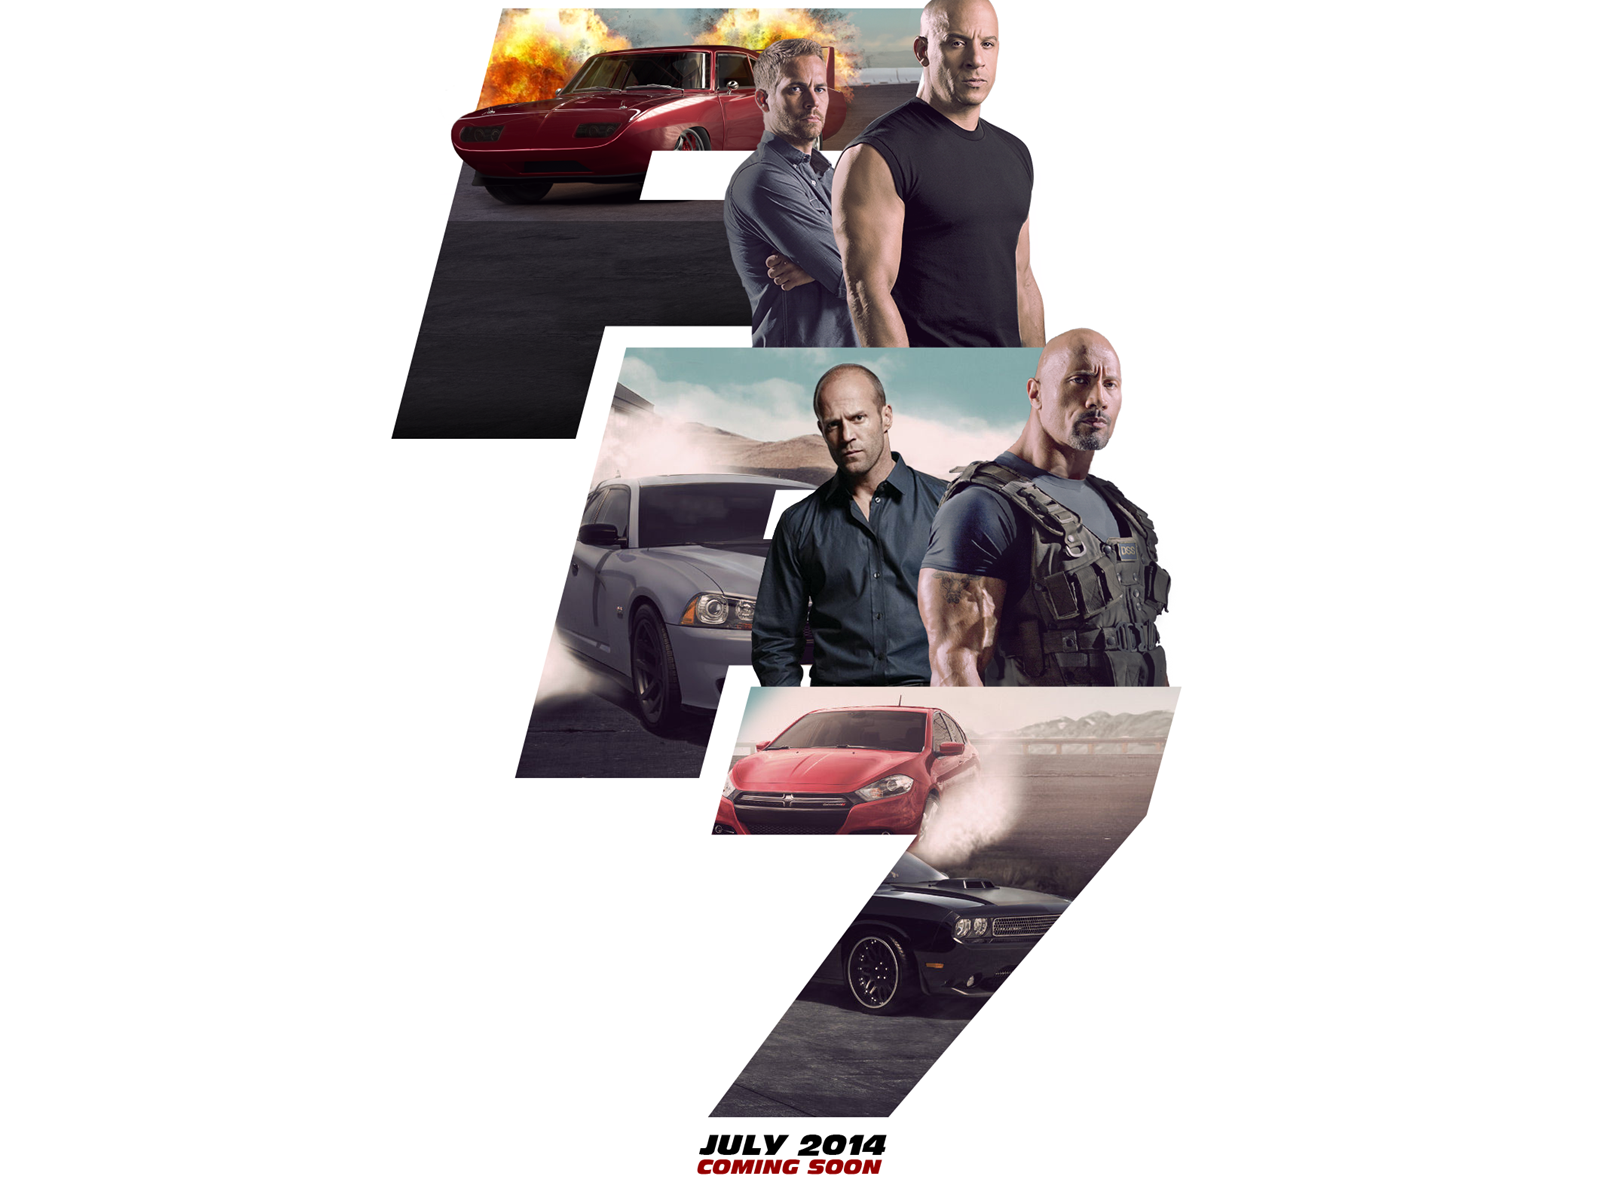 hq wallpapers fast and furious 7 movie wallpapers. Black Bedroom Furniture Sets. Home Design Ideas